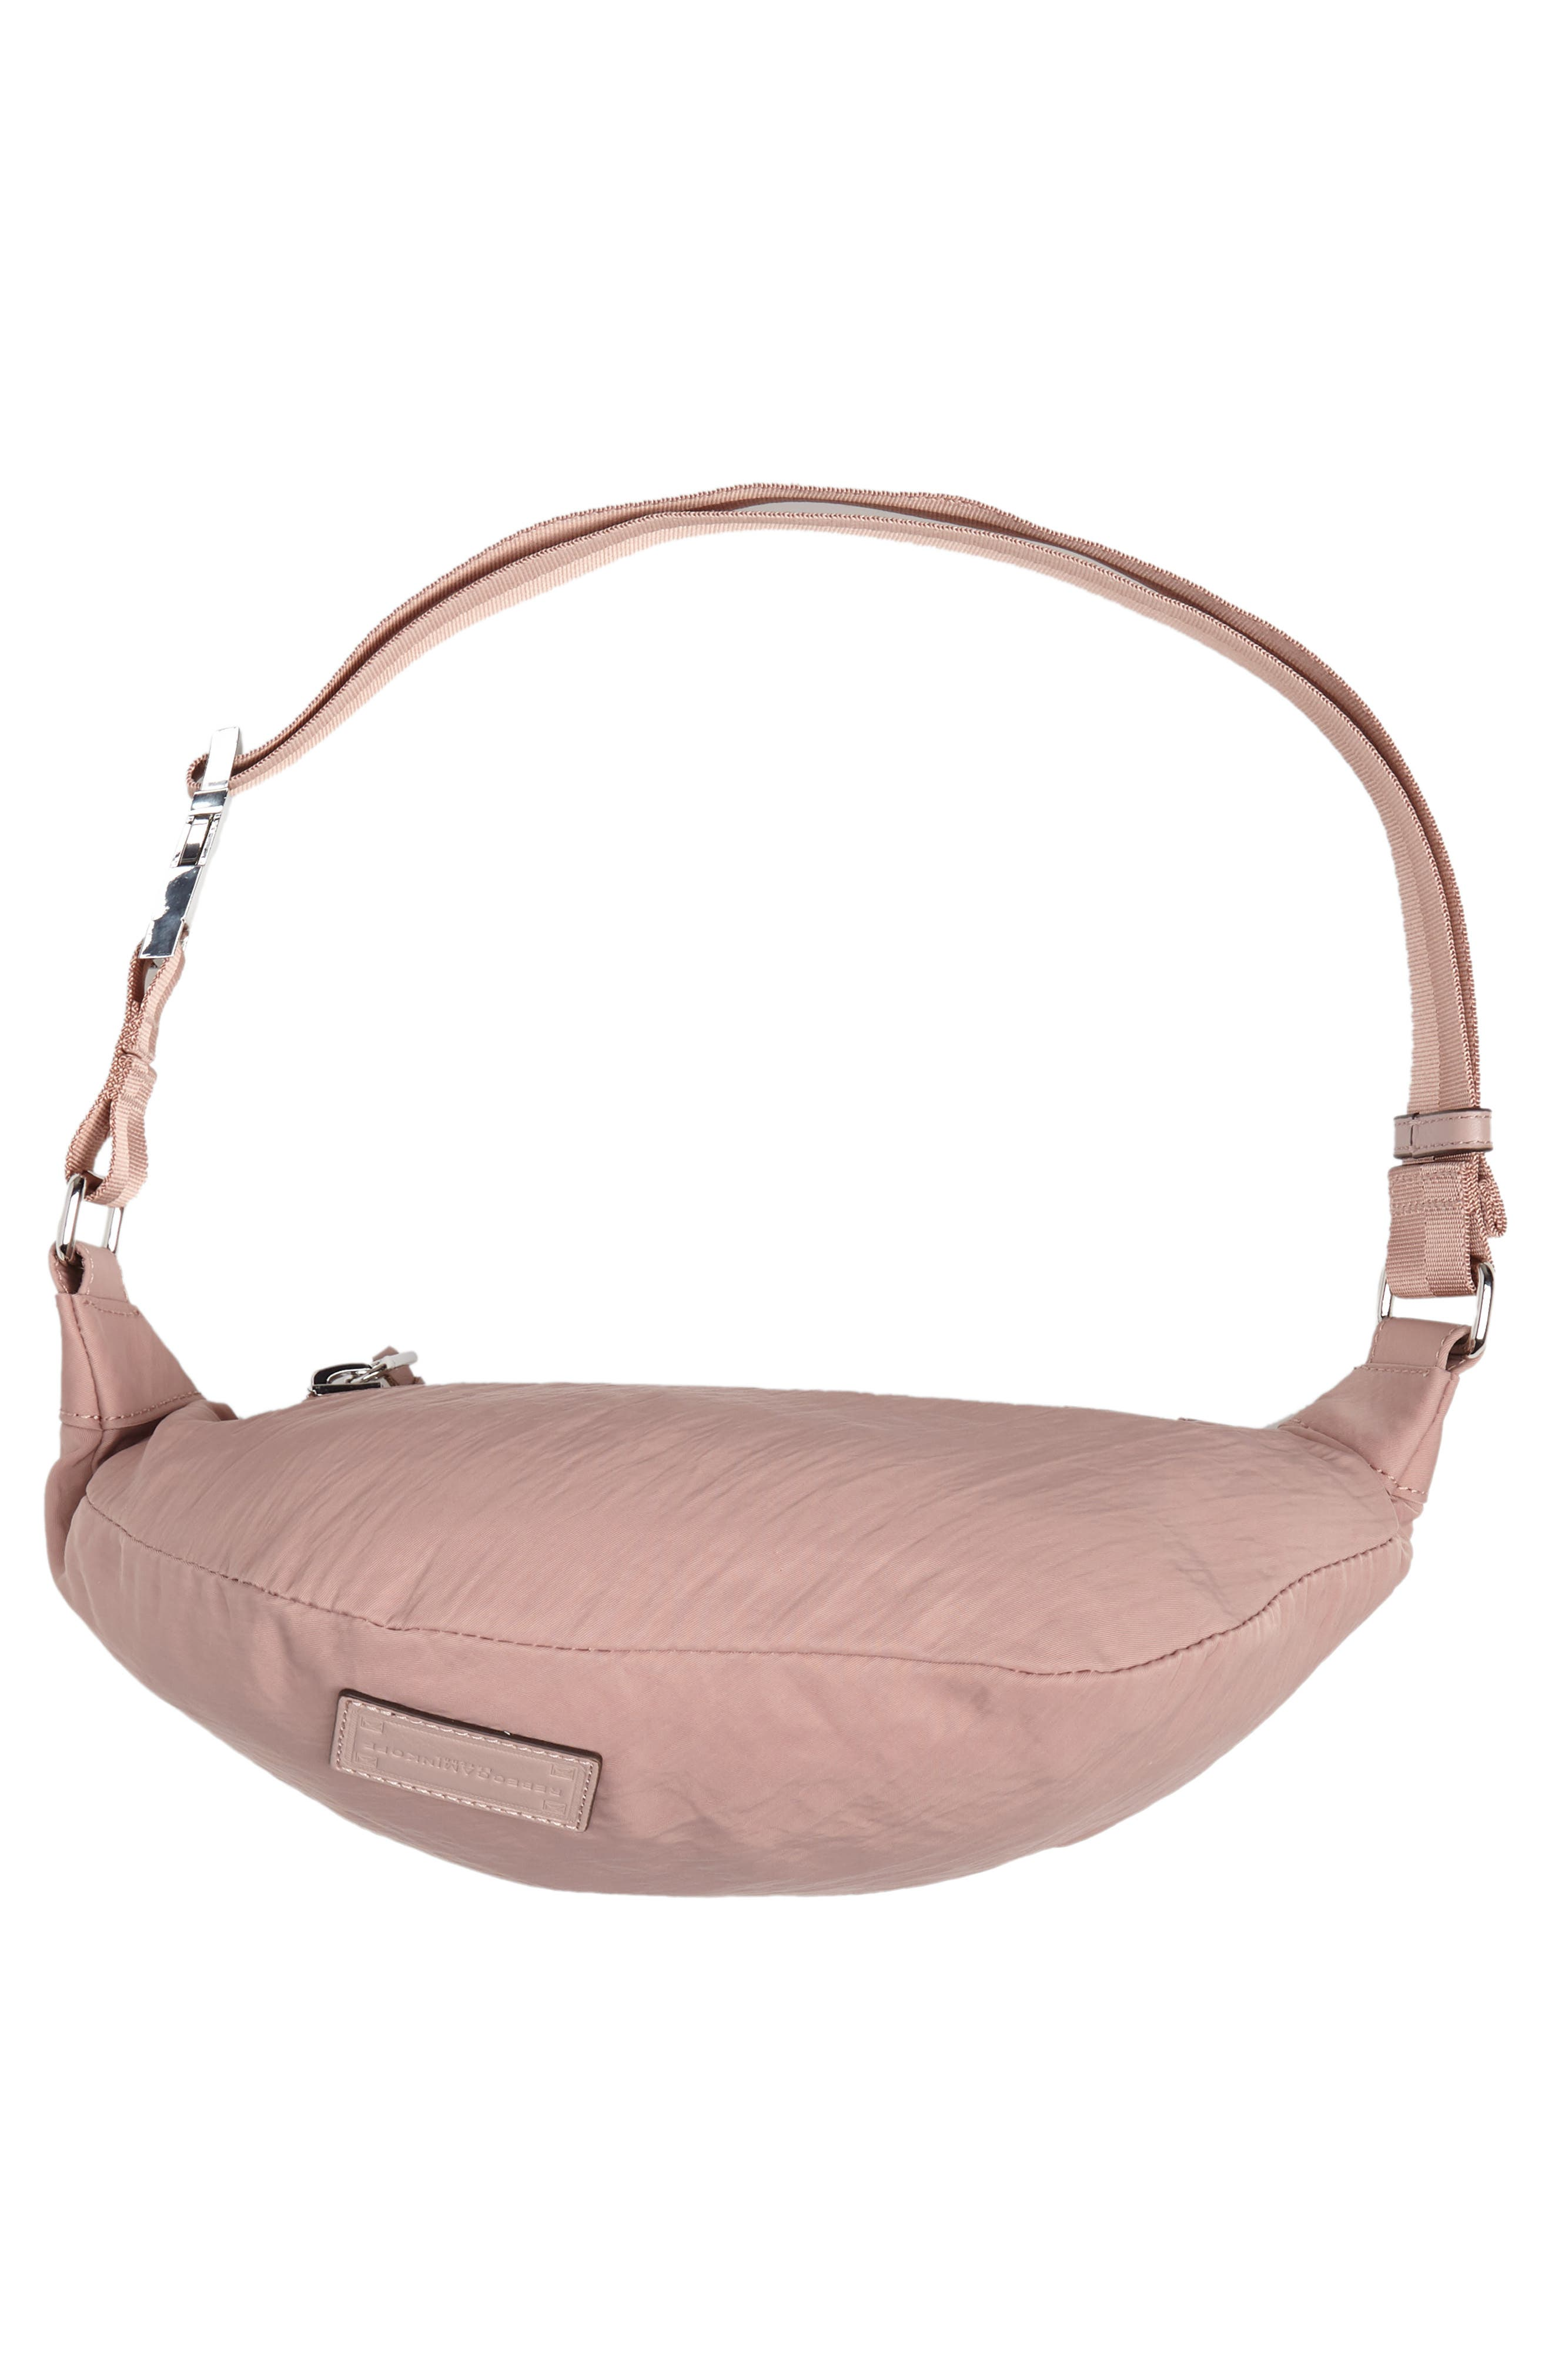 Nylon Belt Bag,                             Alternate thumbnail 7, color,                             Vintage Pink